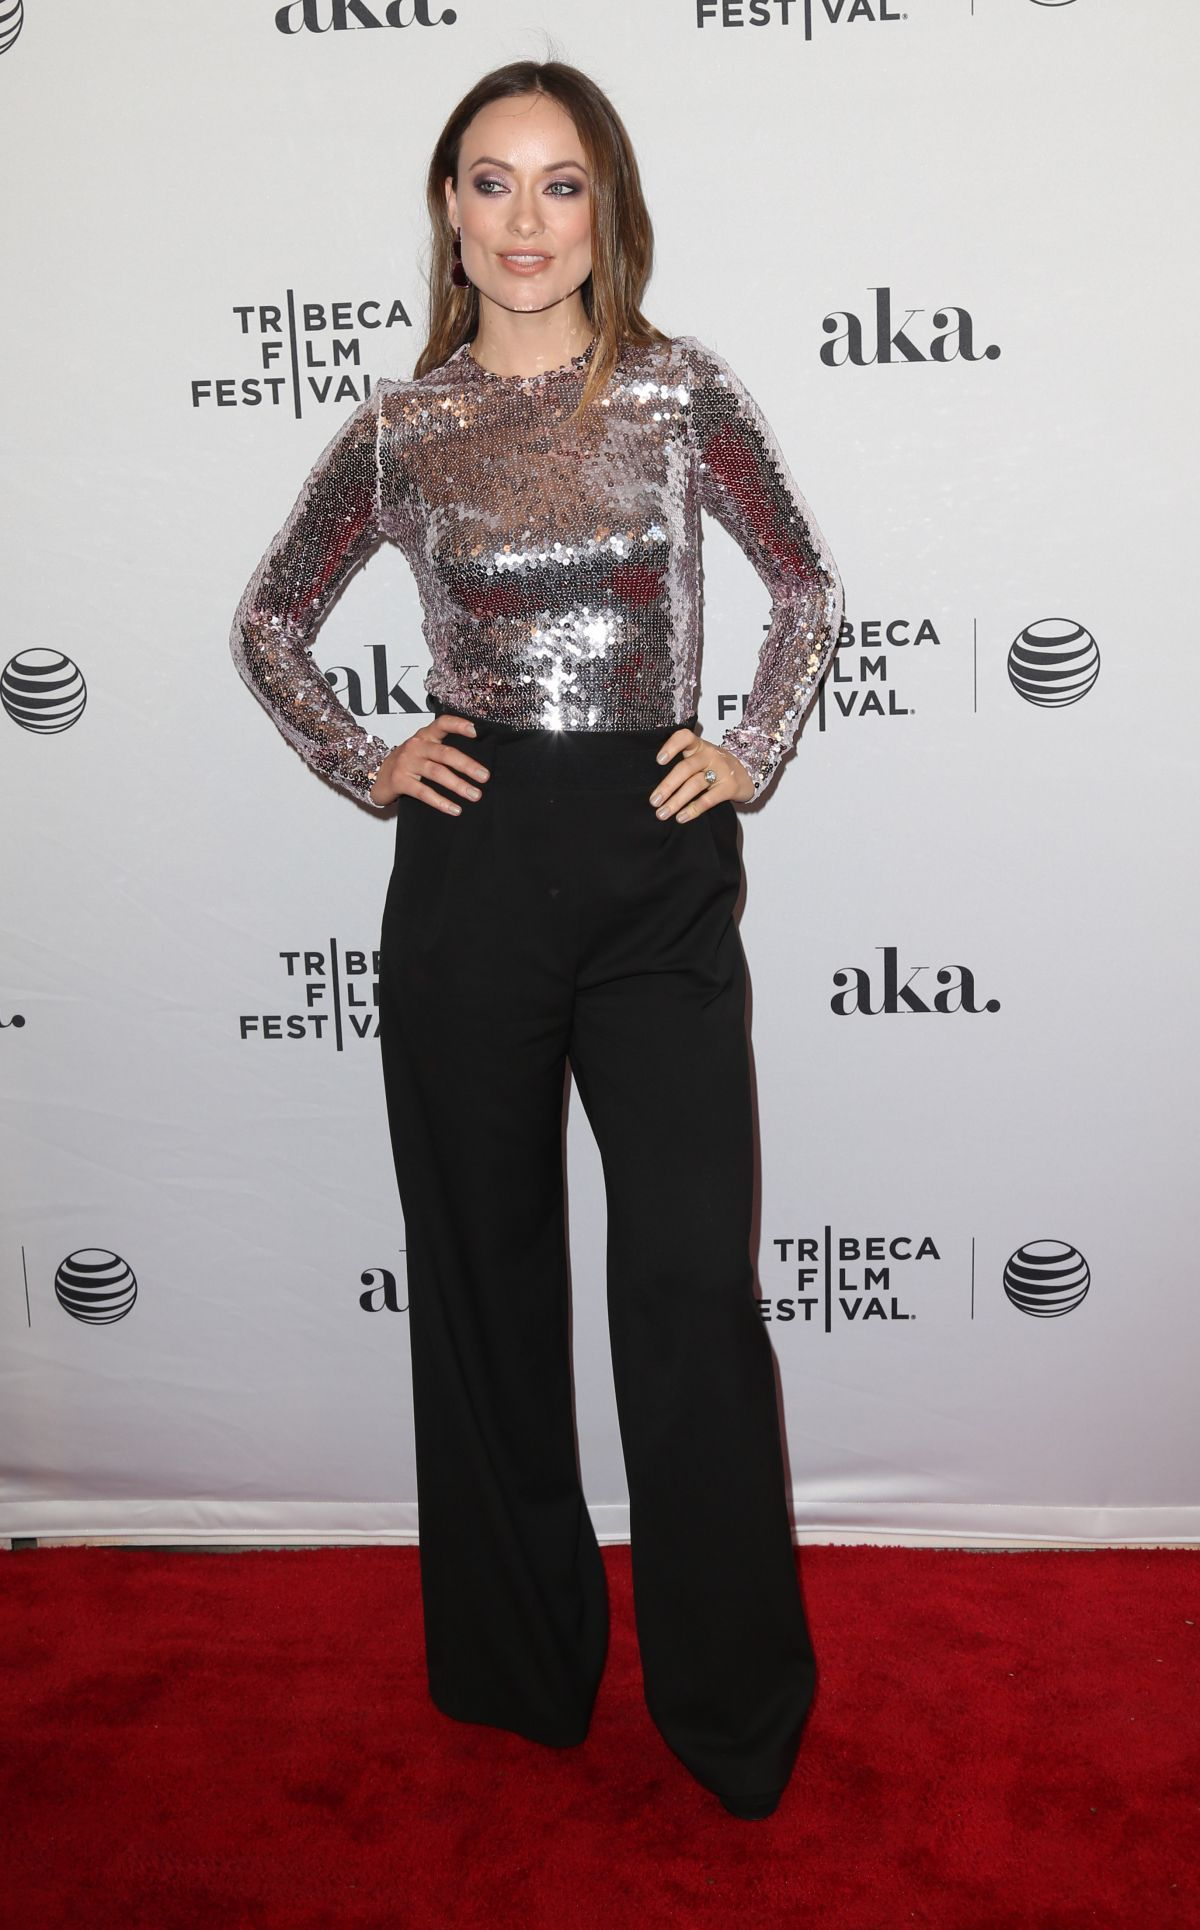 Olivia Wilde at Meadowland Premiere at Tribeca Film Festival in New York, April 2015.